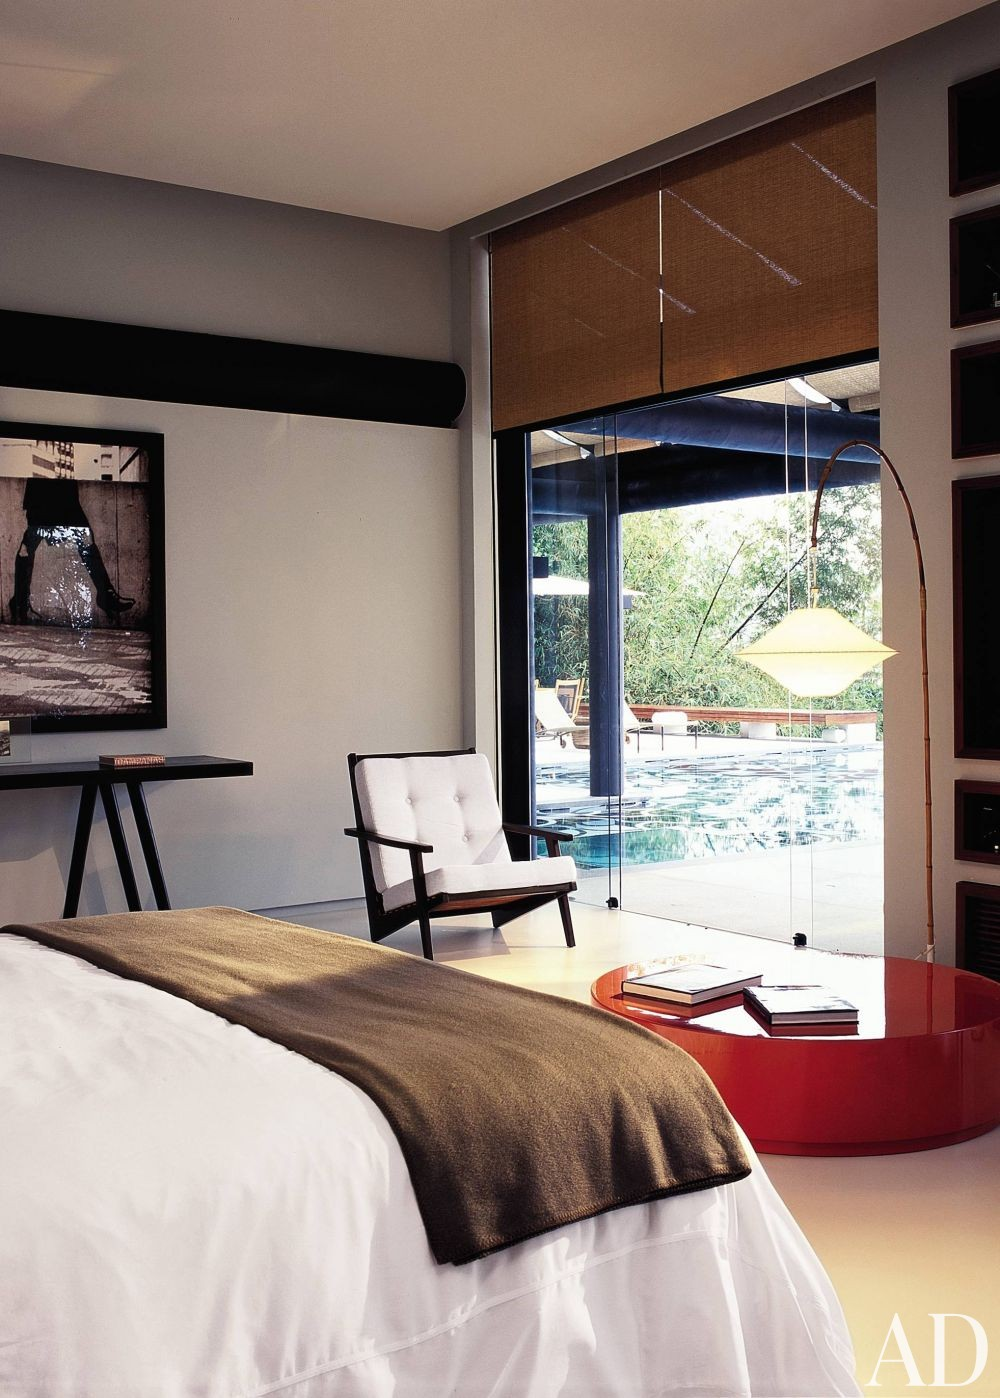 Exotic Bedroom by Mlinaric, Henry & Zervudachi and Luciano Pedrosa in Rio de Janeiro, Brazil